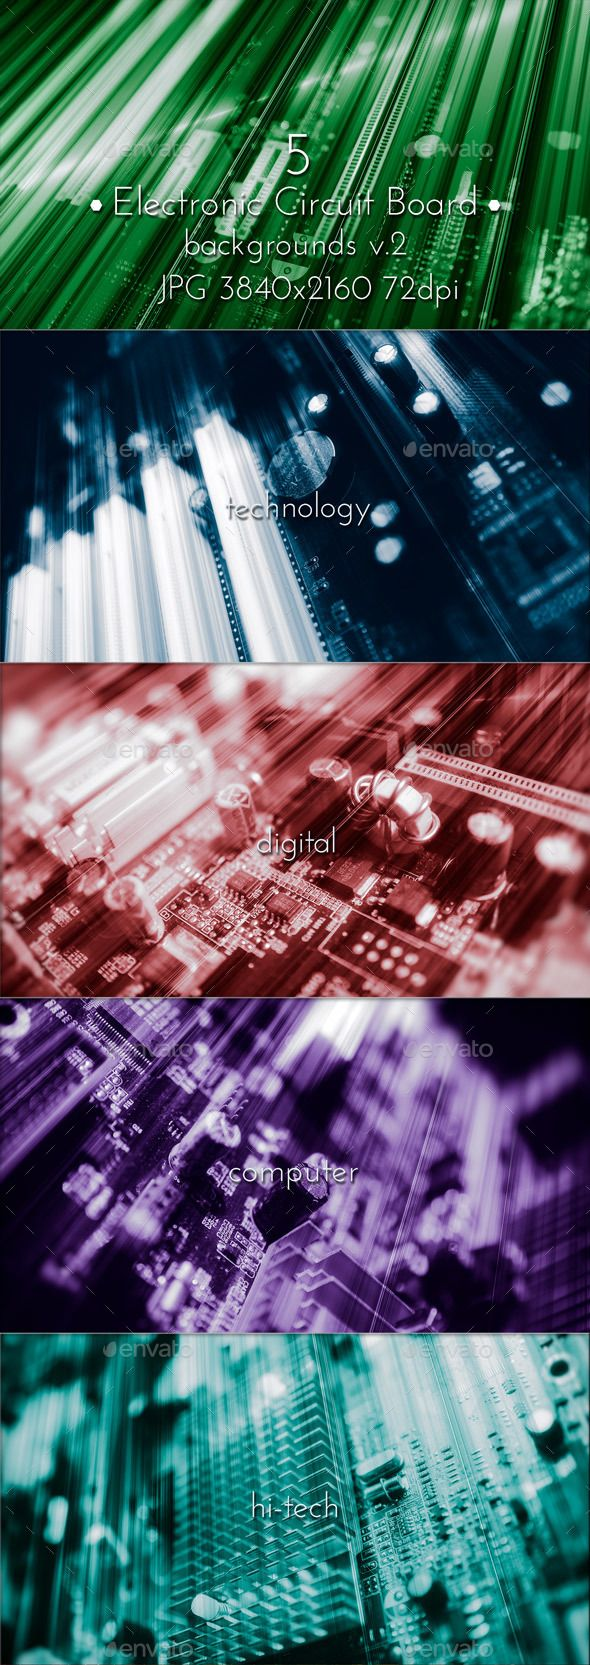 Computer Electronic Circuit Board, Electronic Computer Circuit Board Monochrome Web backgrounds. Vol 2. 5 images. Jpeg 3840×2160 (16:9 format) 72 dpi.